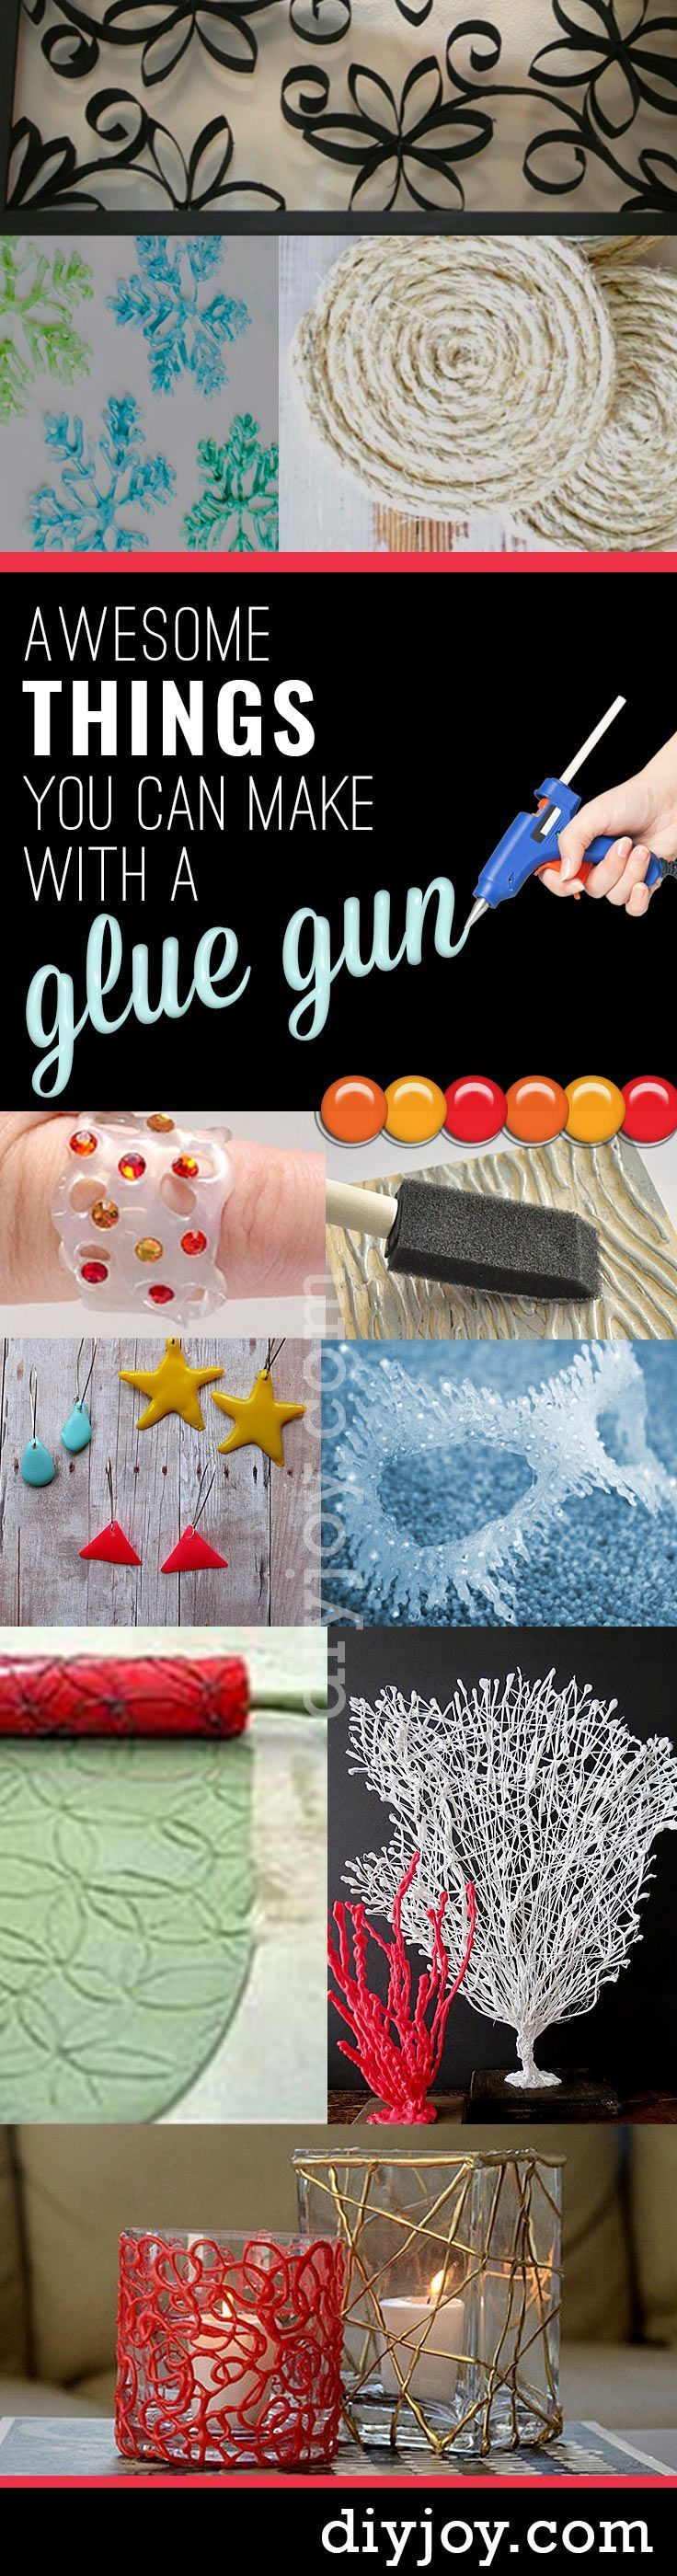 Best Hot Glue Gun Crafts, DIY Projects and Arts and Crafts Ideas Using Glue Gun Sticks | Creative DIY Ideas for Teens diyjoy.com/...